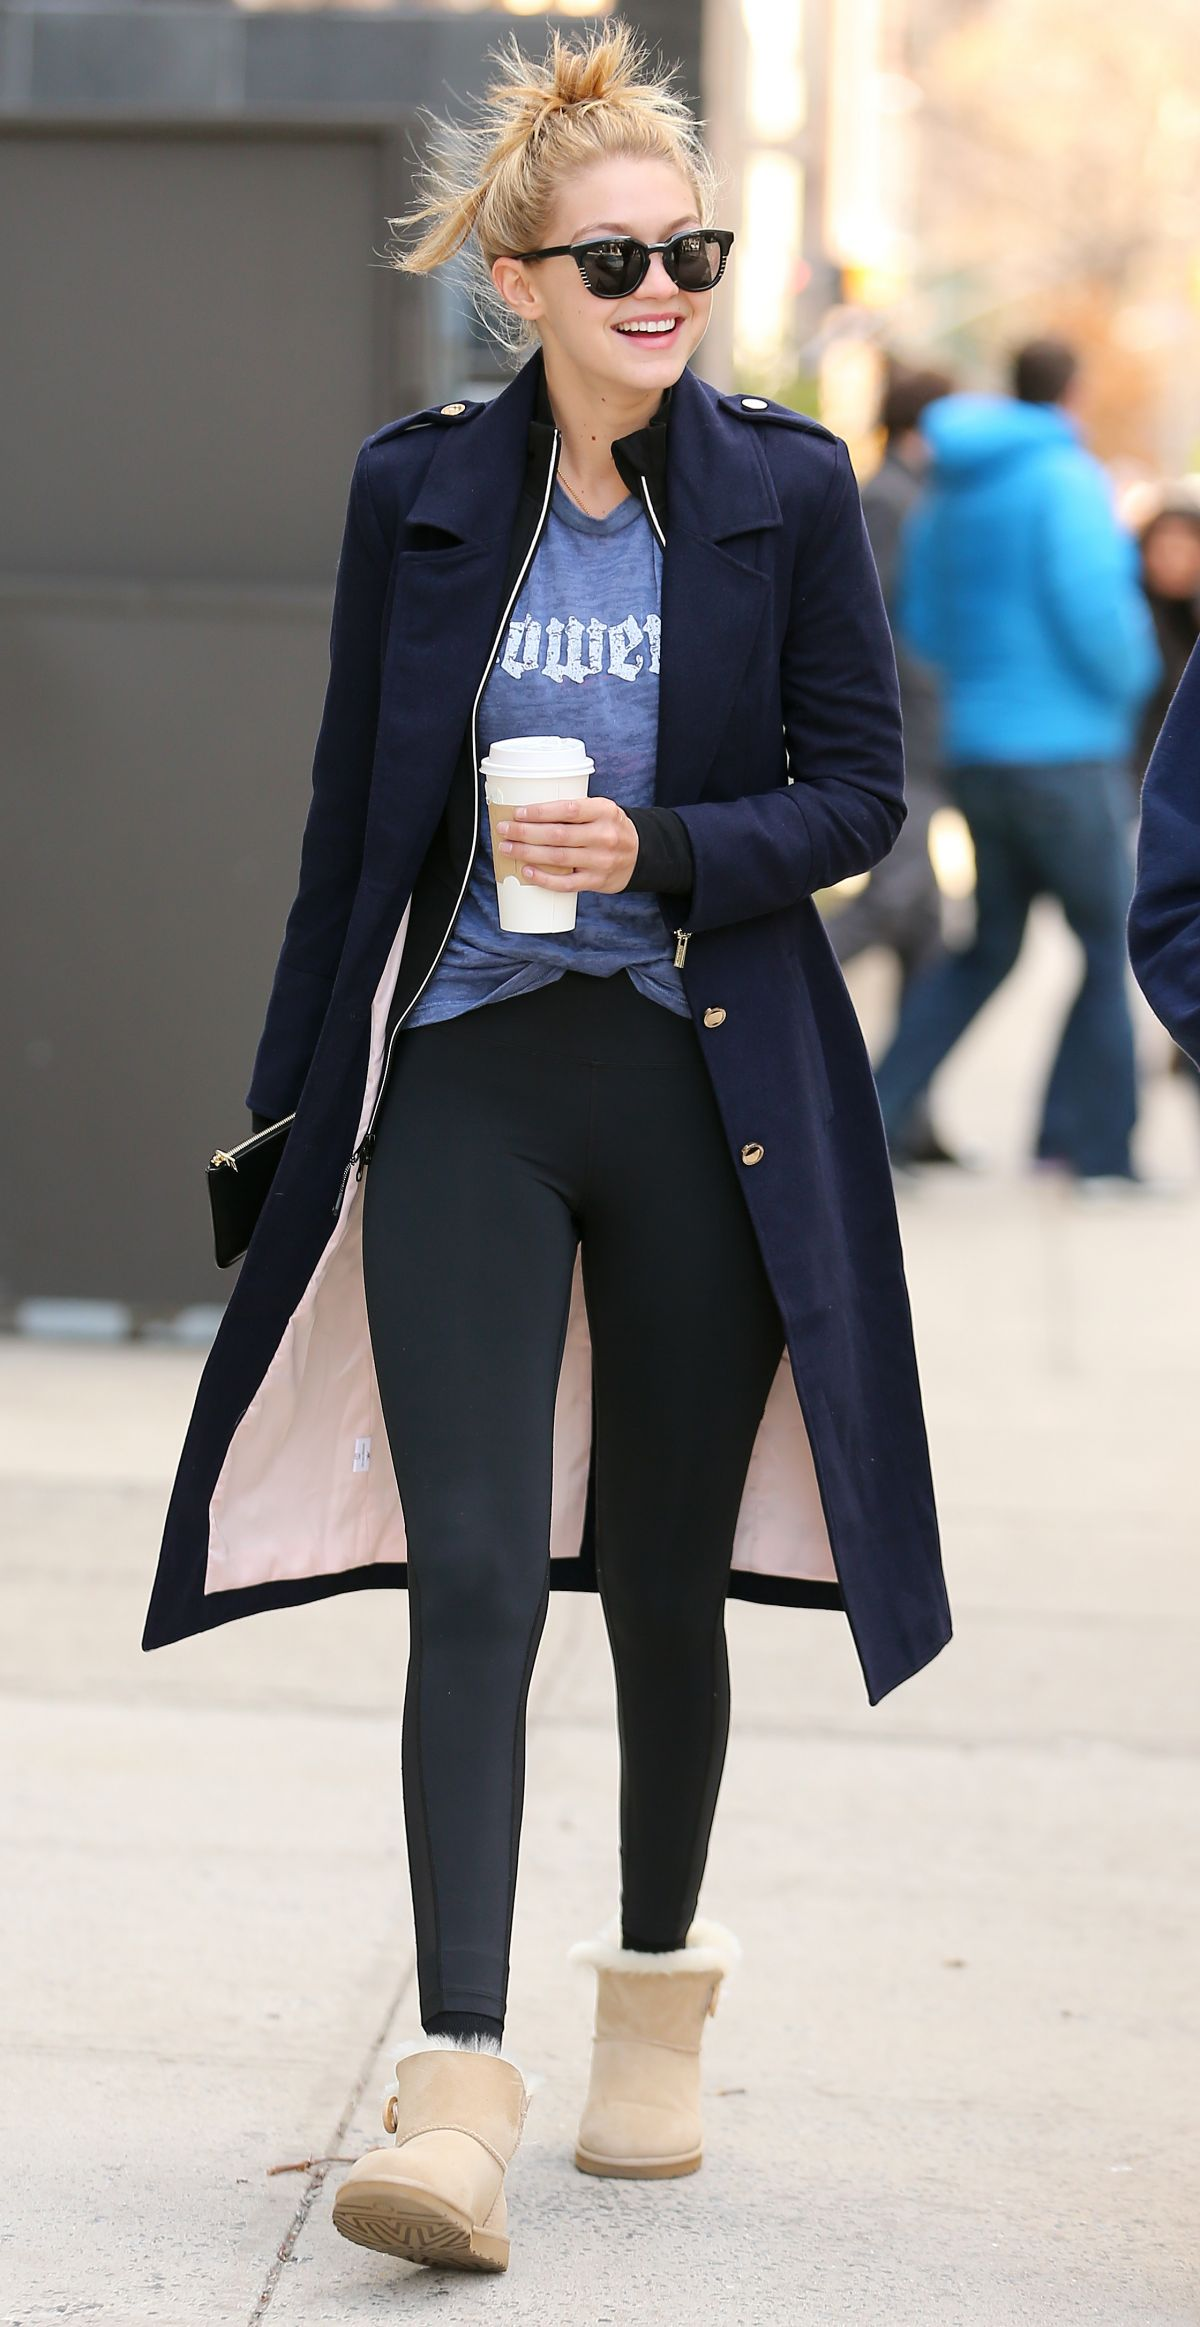 GIG HADID in Tights Out and About in New York 1903